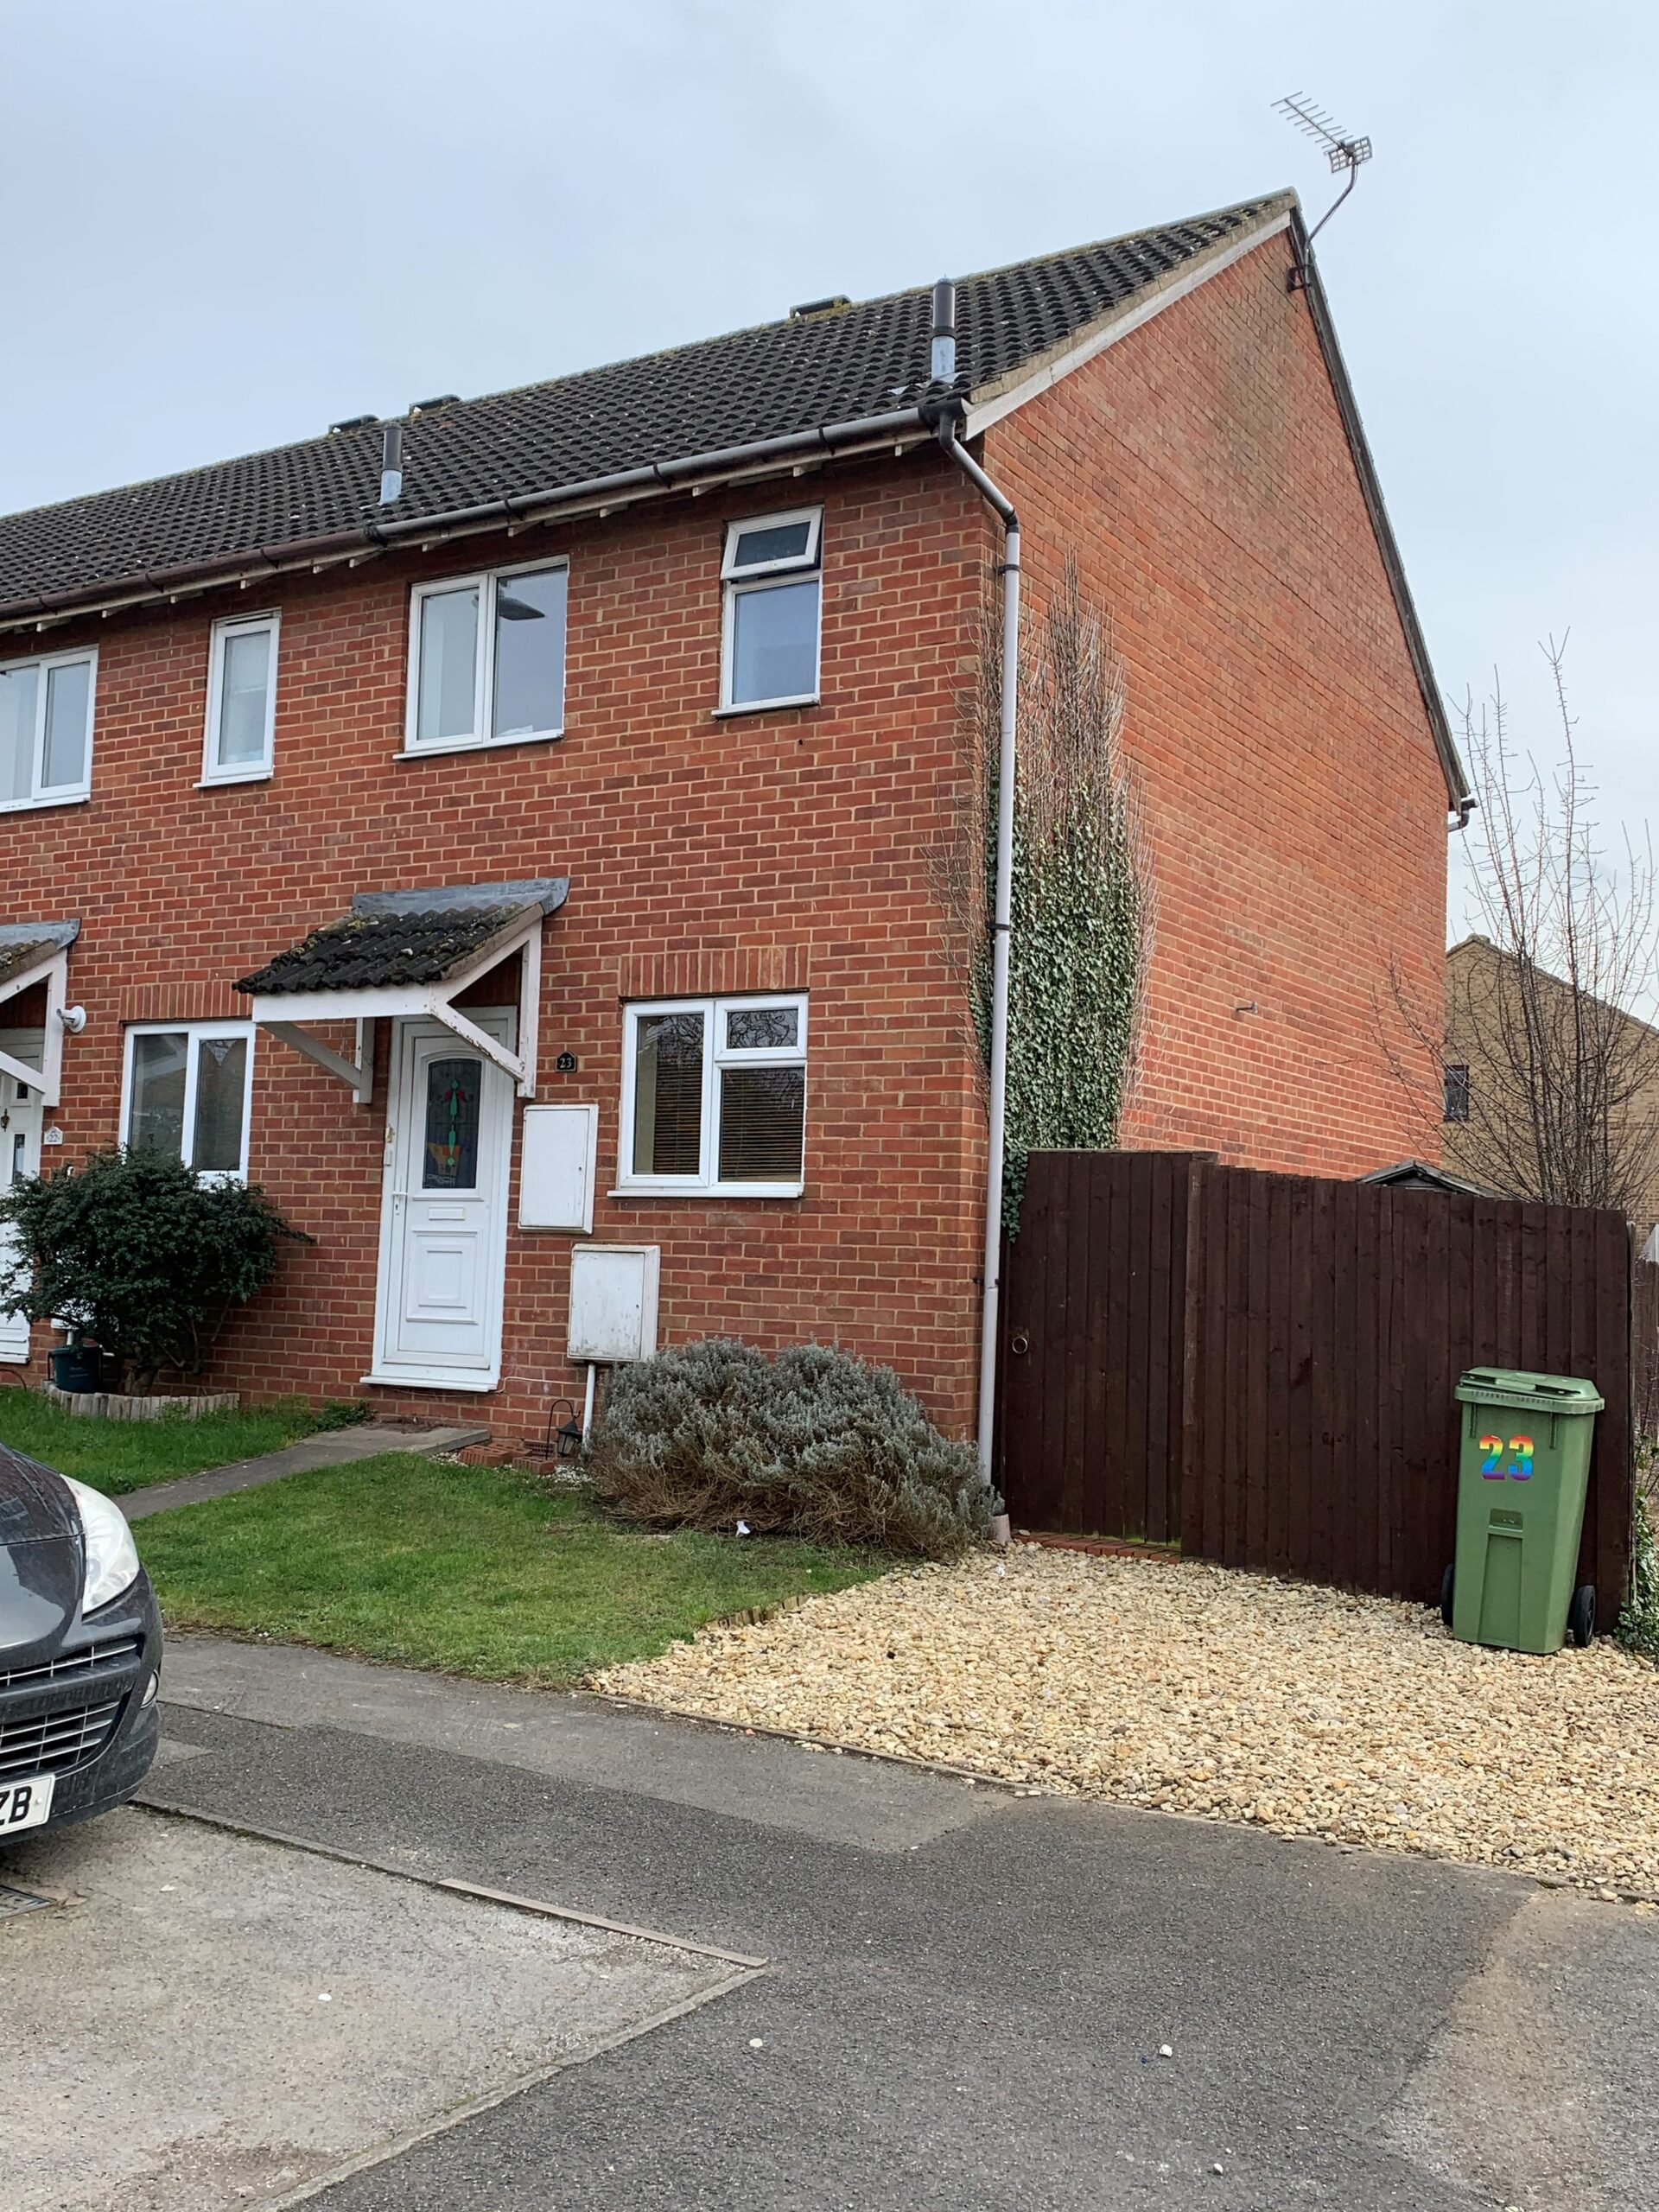 23 Meadvale Close, Longford, Gloucester GL2 9AU